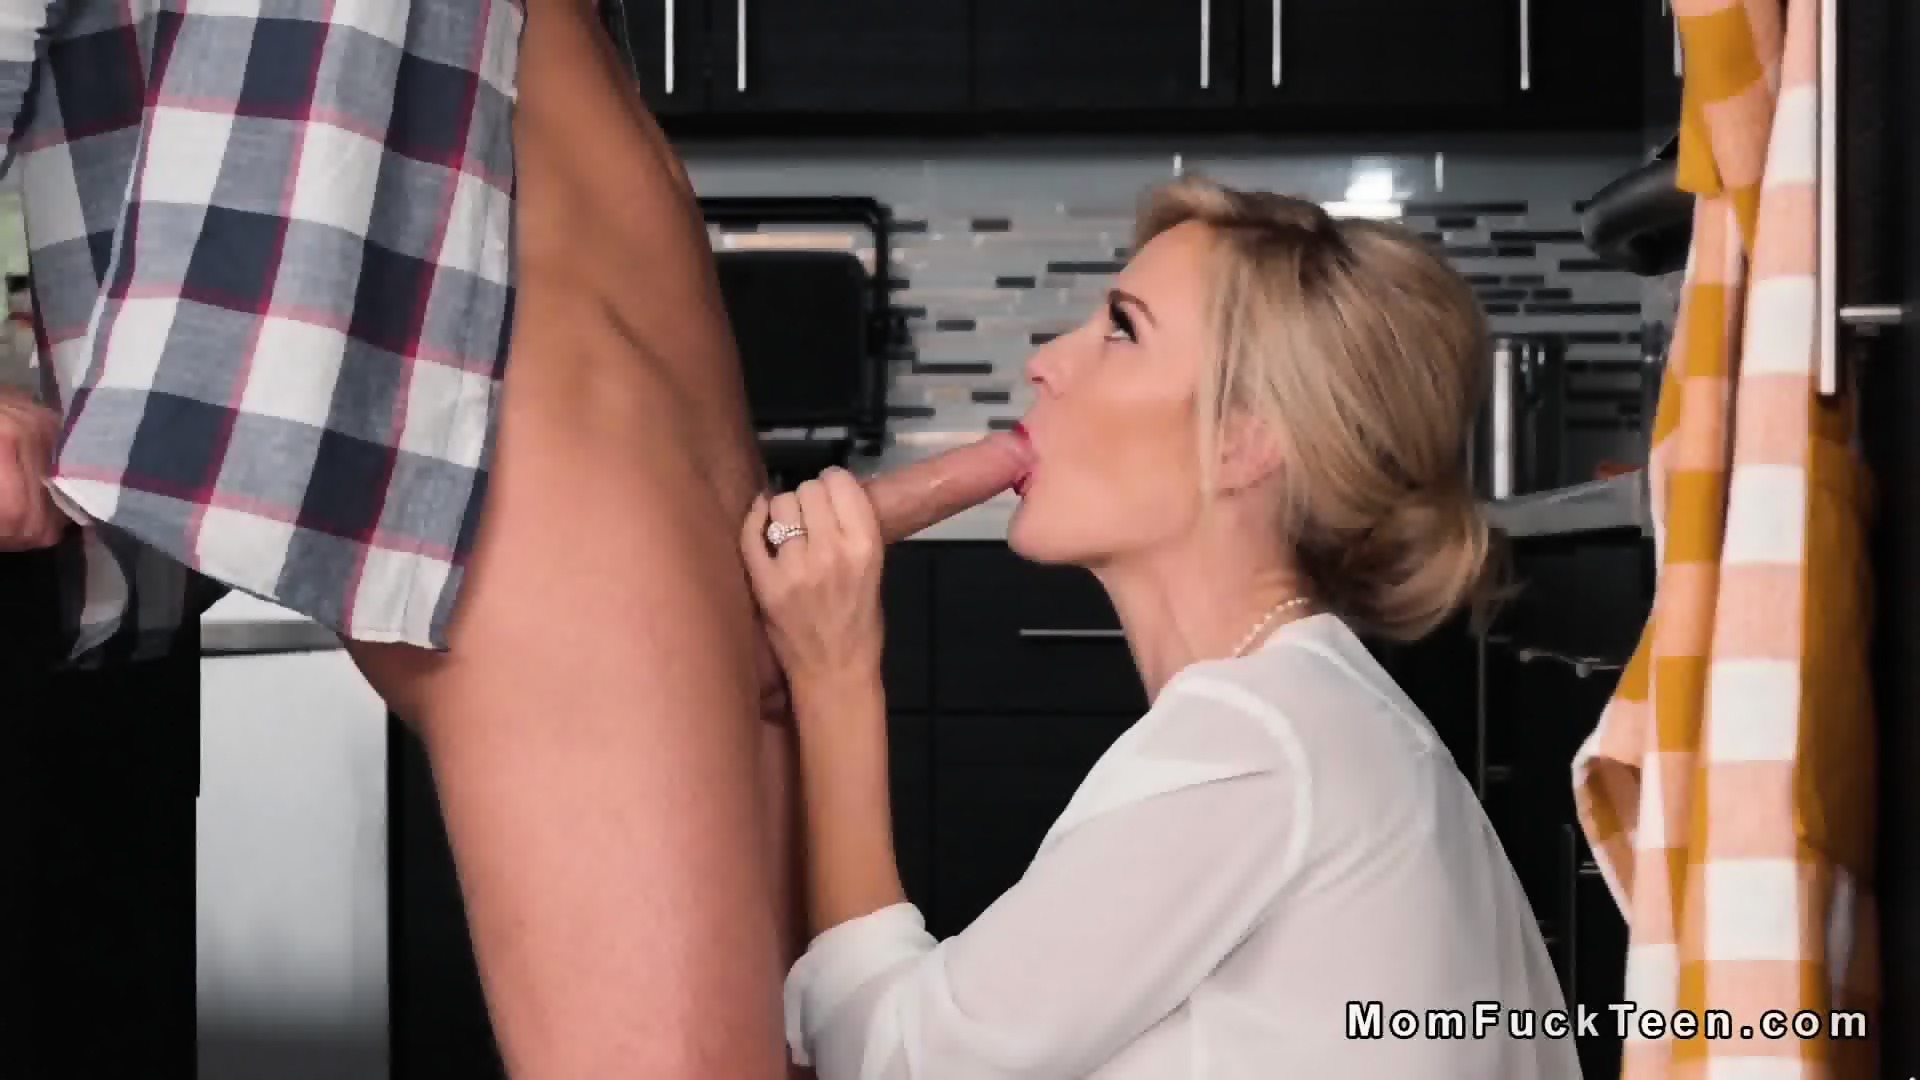 was and erotic yellow handjob penis and crempie confirm. And have faced